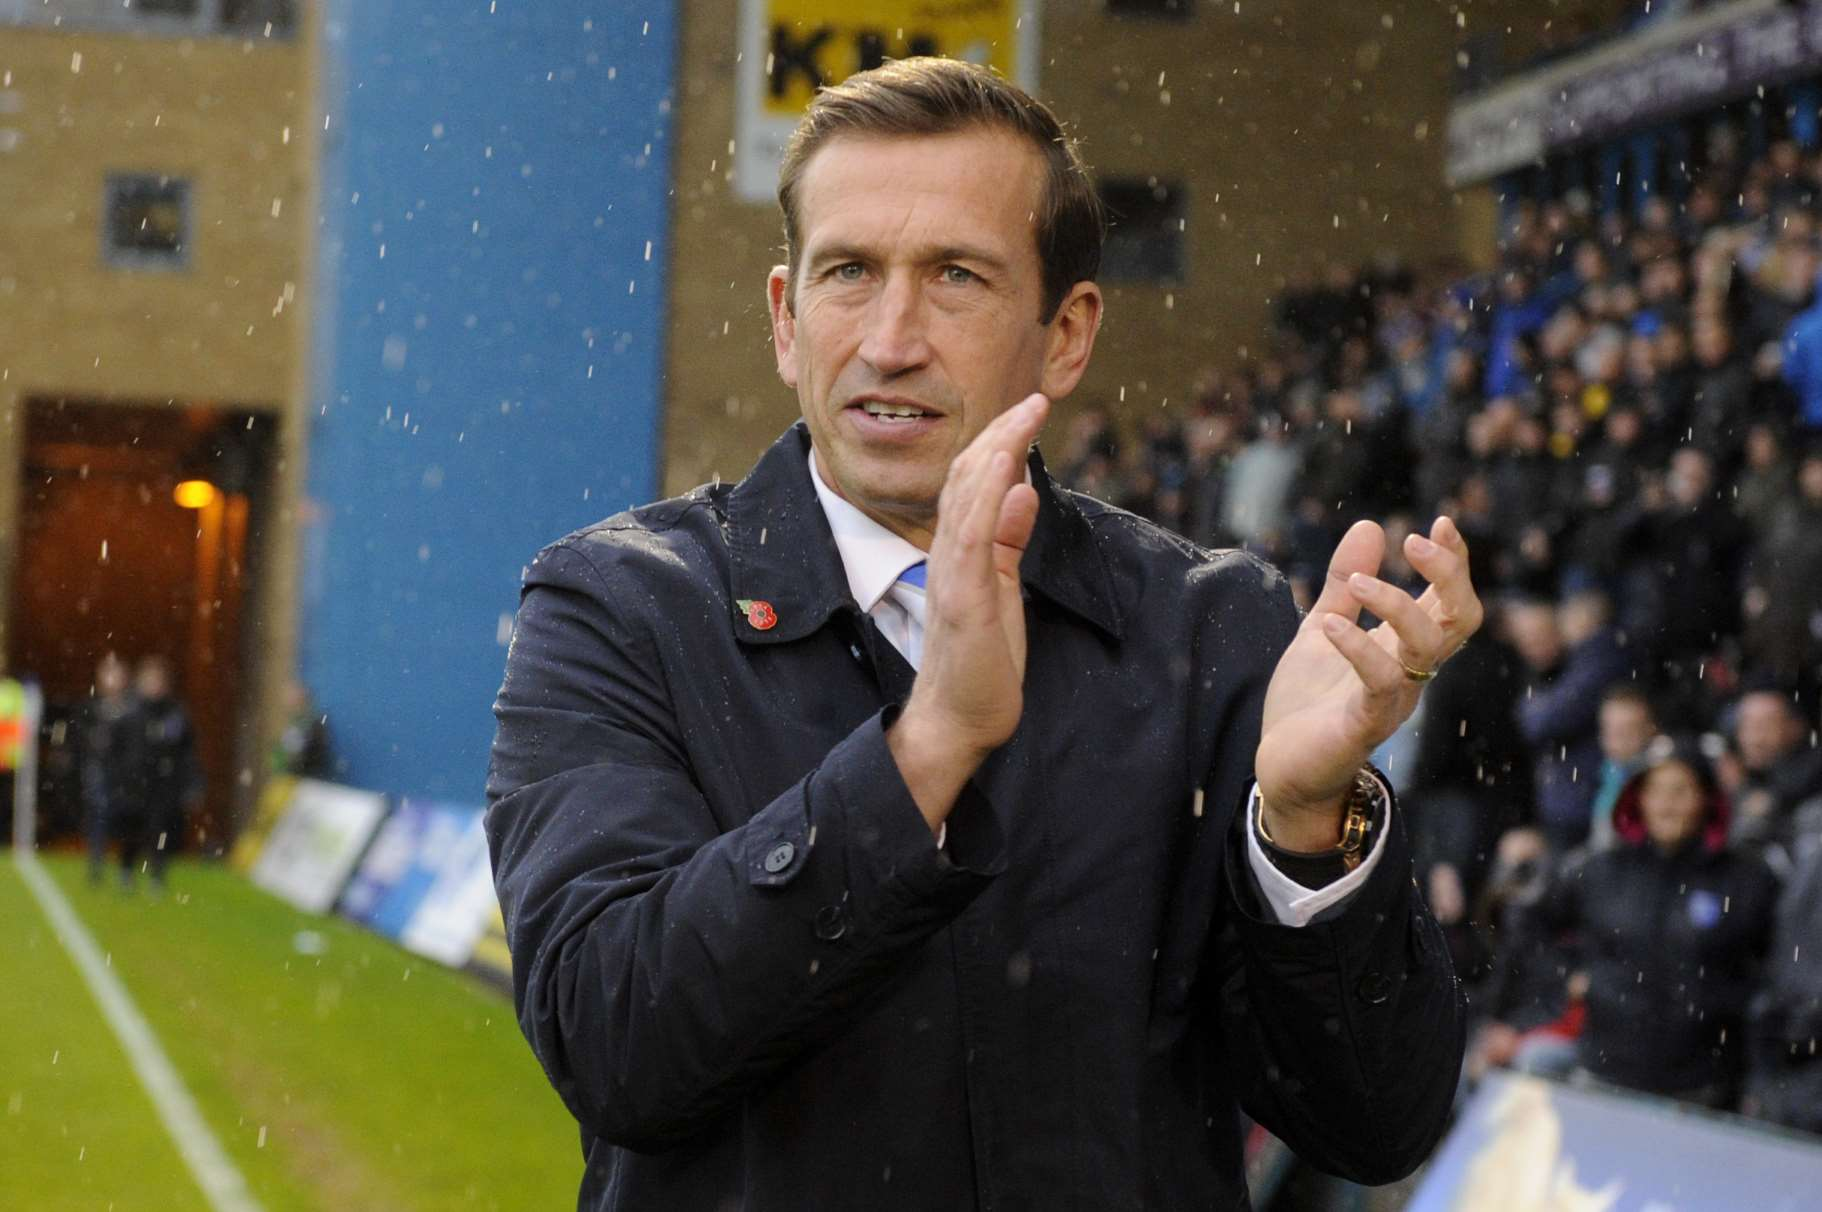 Gillingham manager Justin Edinburgh before his side face Bury, winning 3-1 to go top again Picture: Barry Goodwin